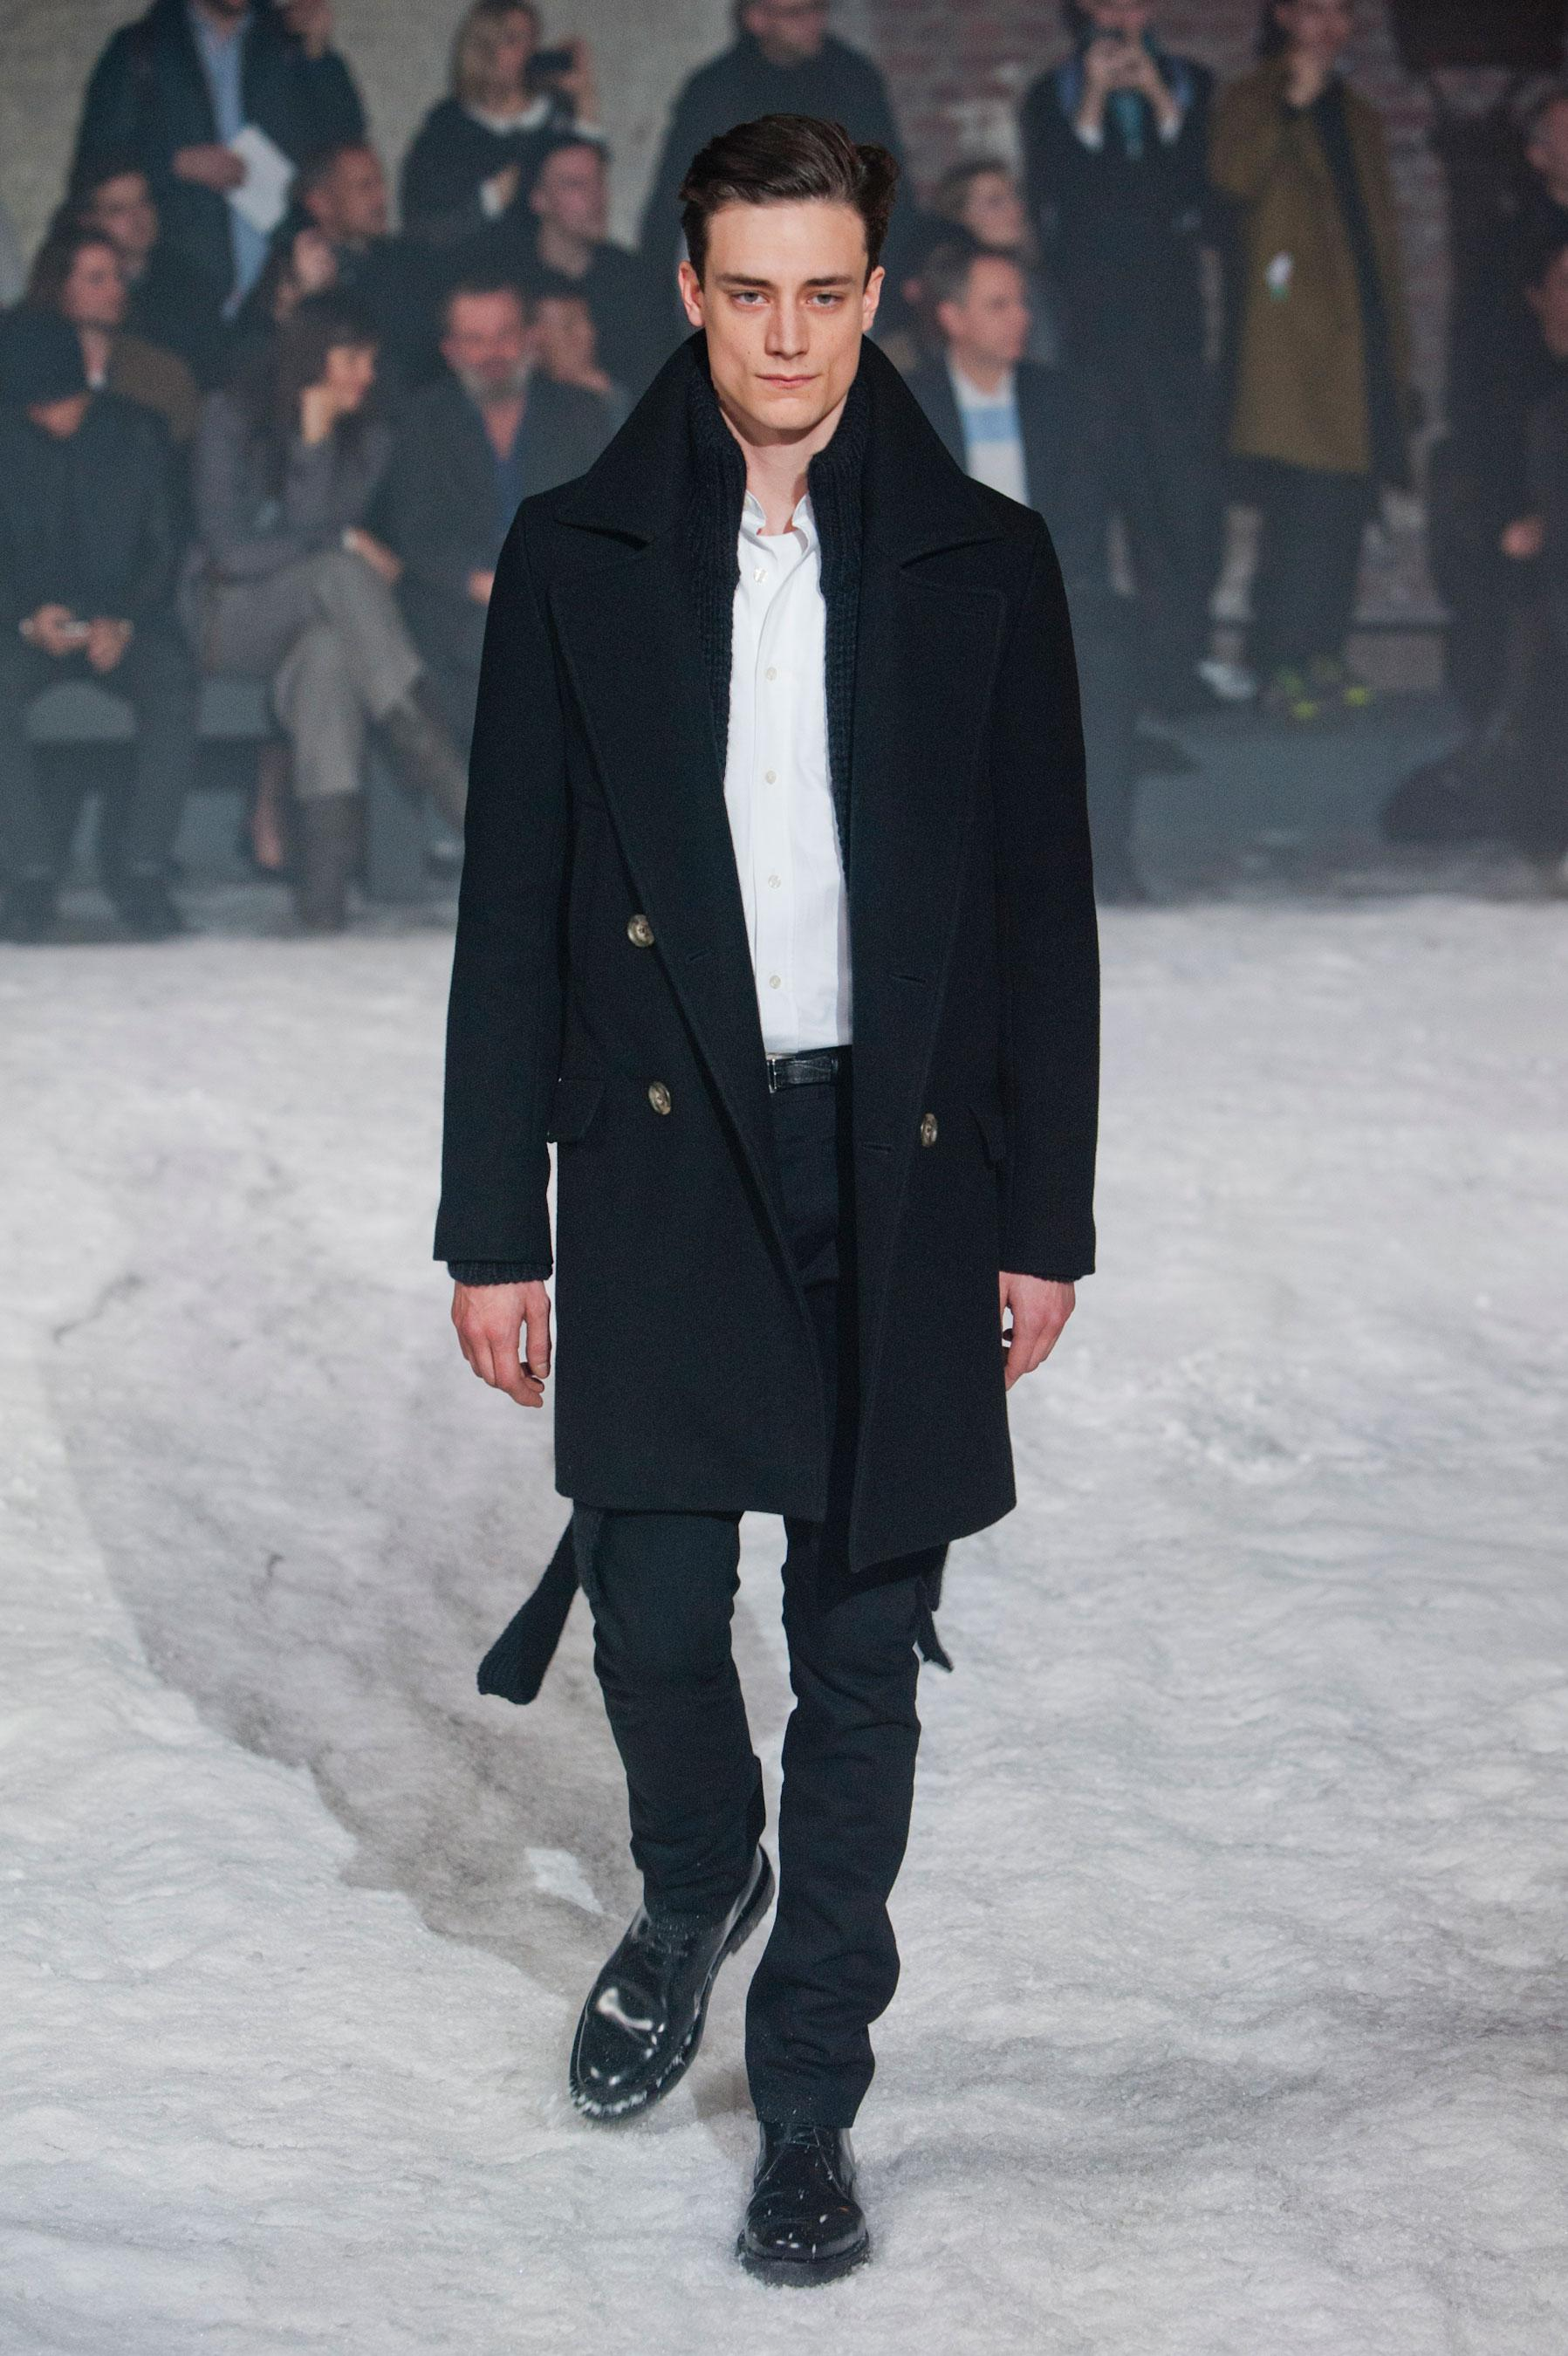 low priced b6602 aaf96 defile-ami-alexandre-mattiussi-homme-automne-hiver-2014-2015-photo-31 0.jpg